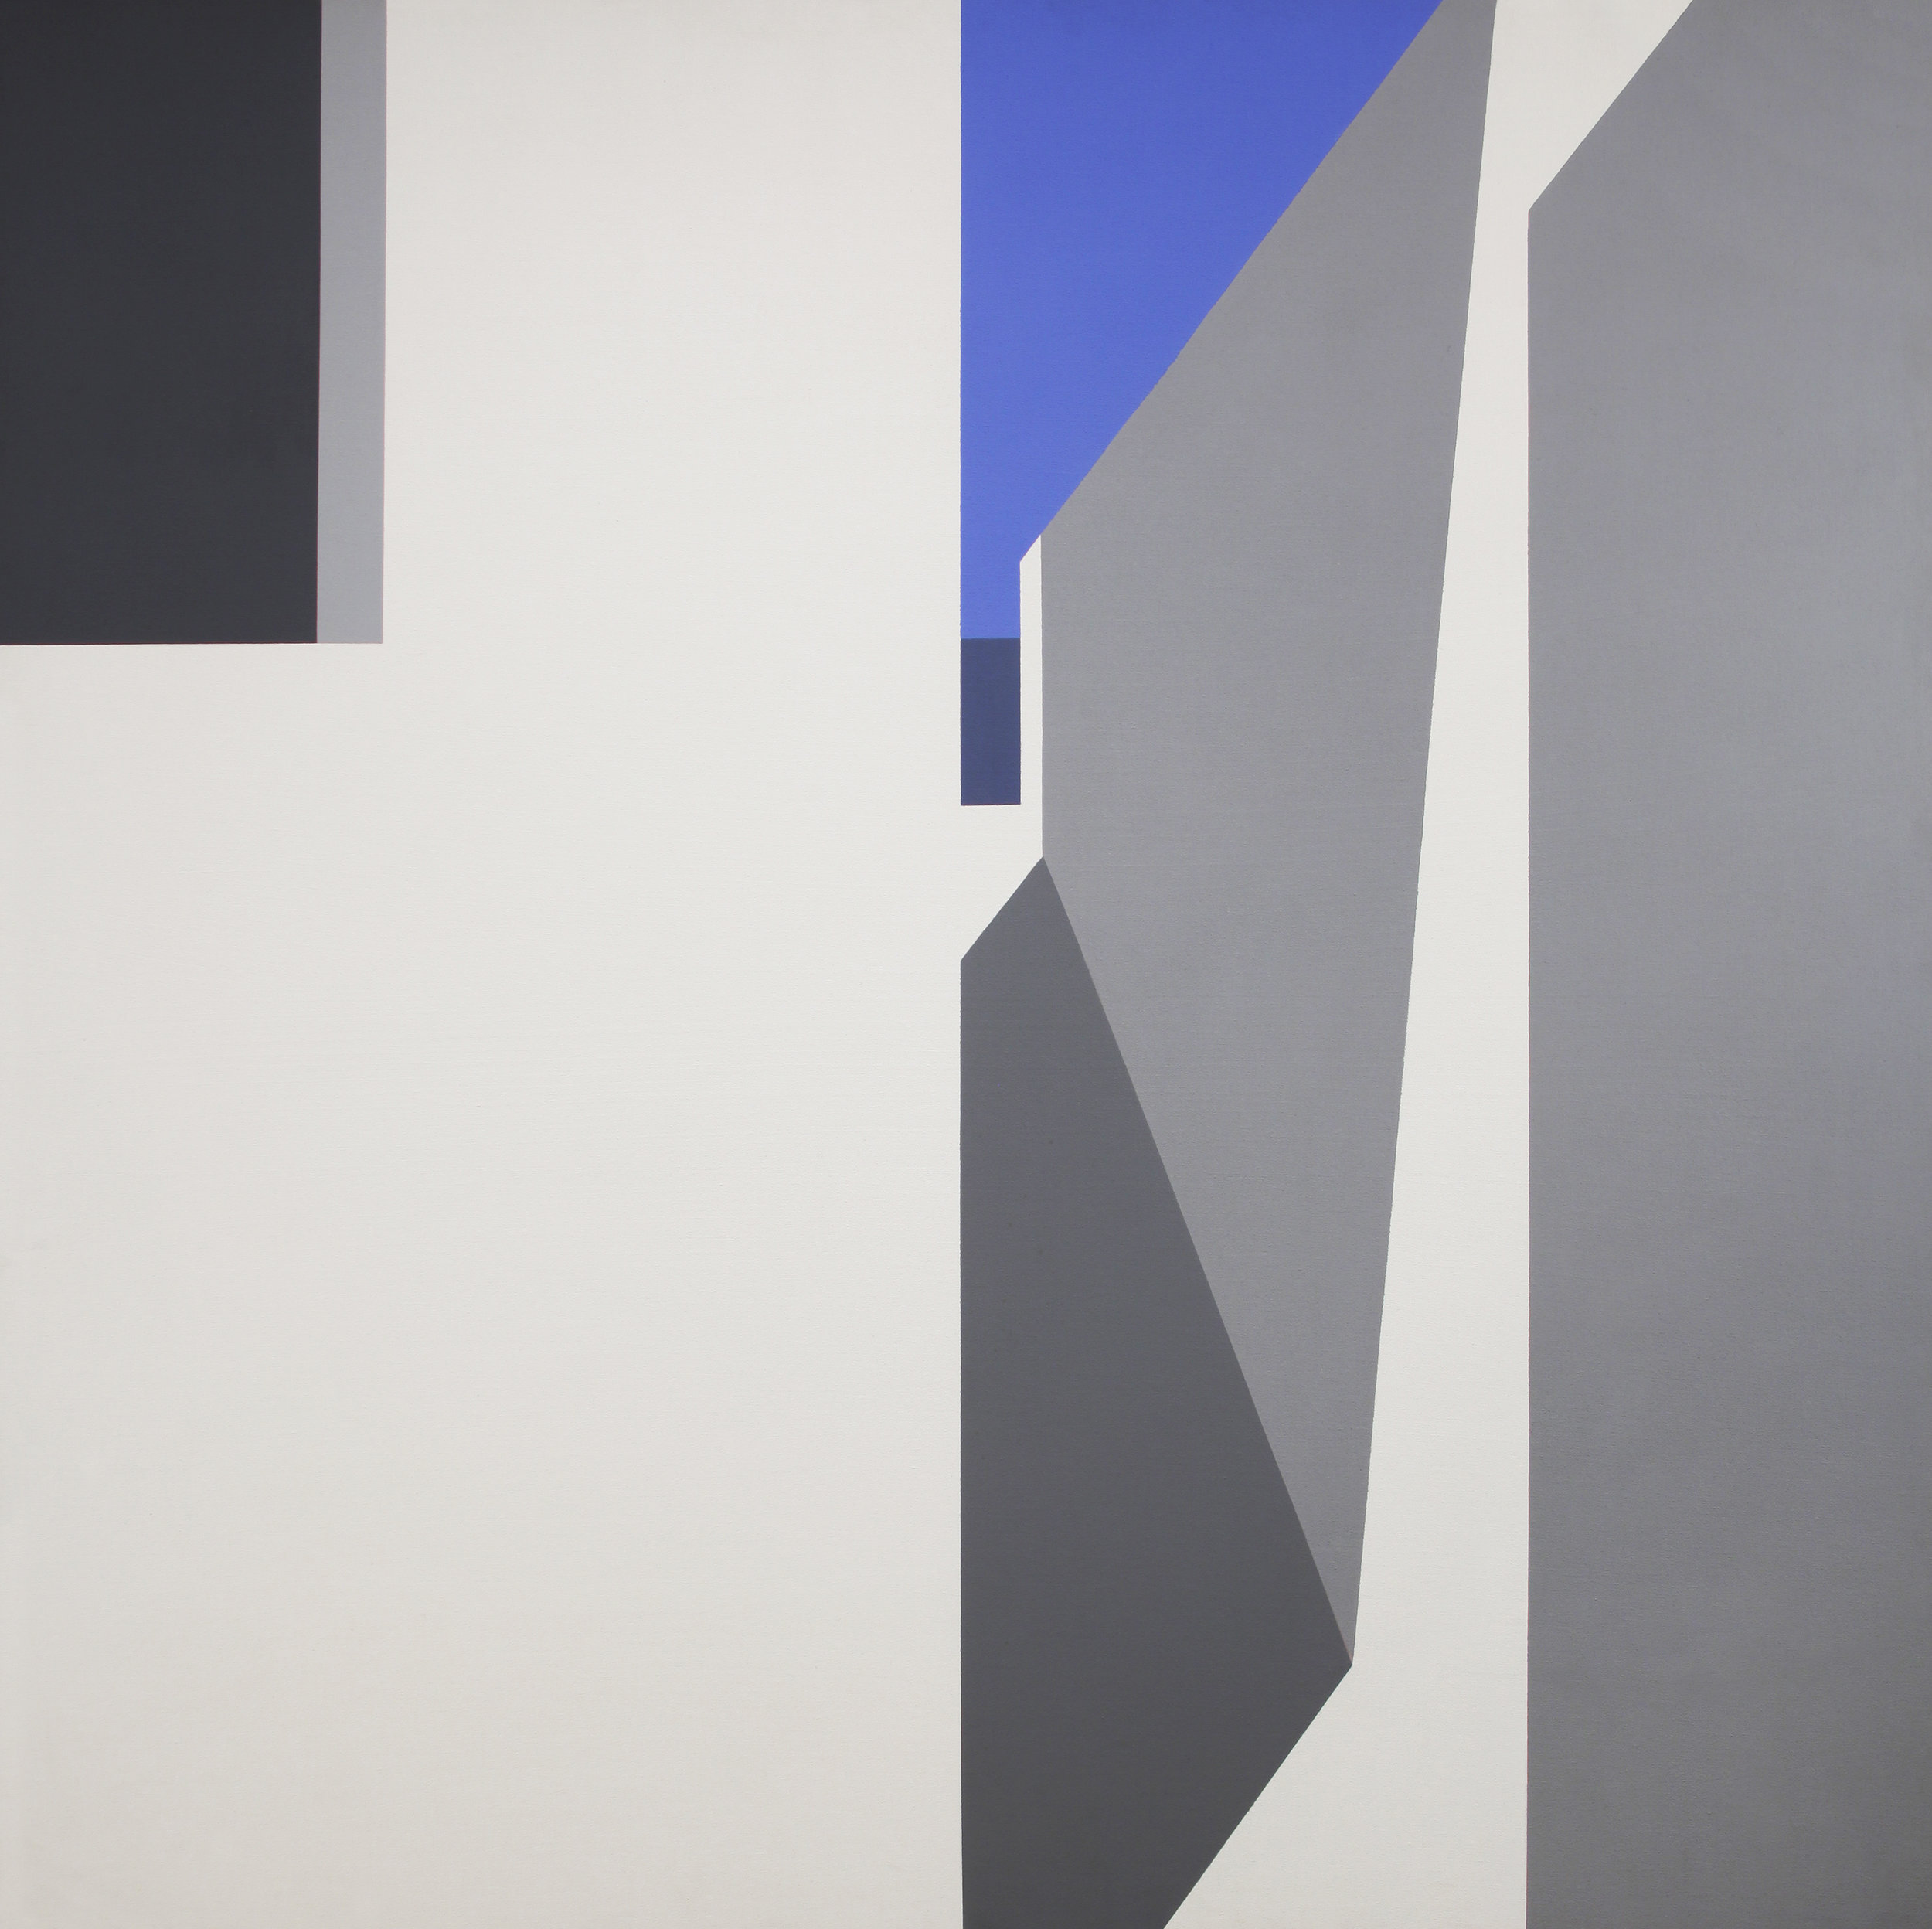 Aegean Light , 1973 acrylic on canvas 60 x 60 inches; 152.4 x 152.4 centimeters  Private Collection